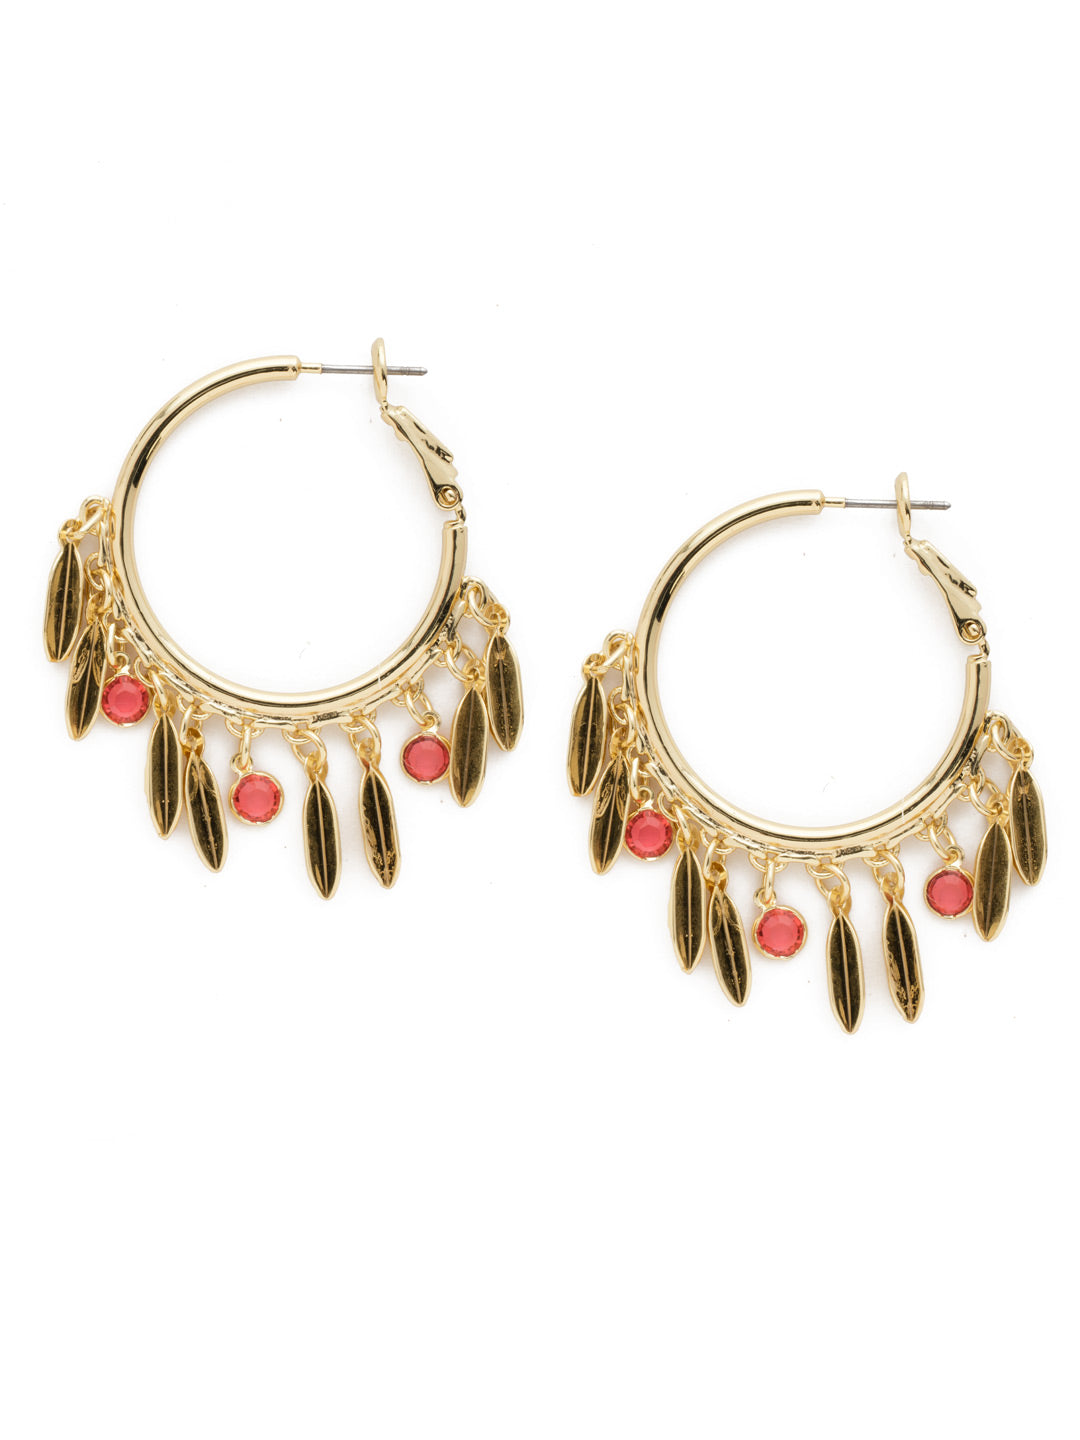 Carrington Hoop Earring - EEK35BGISS